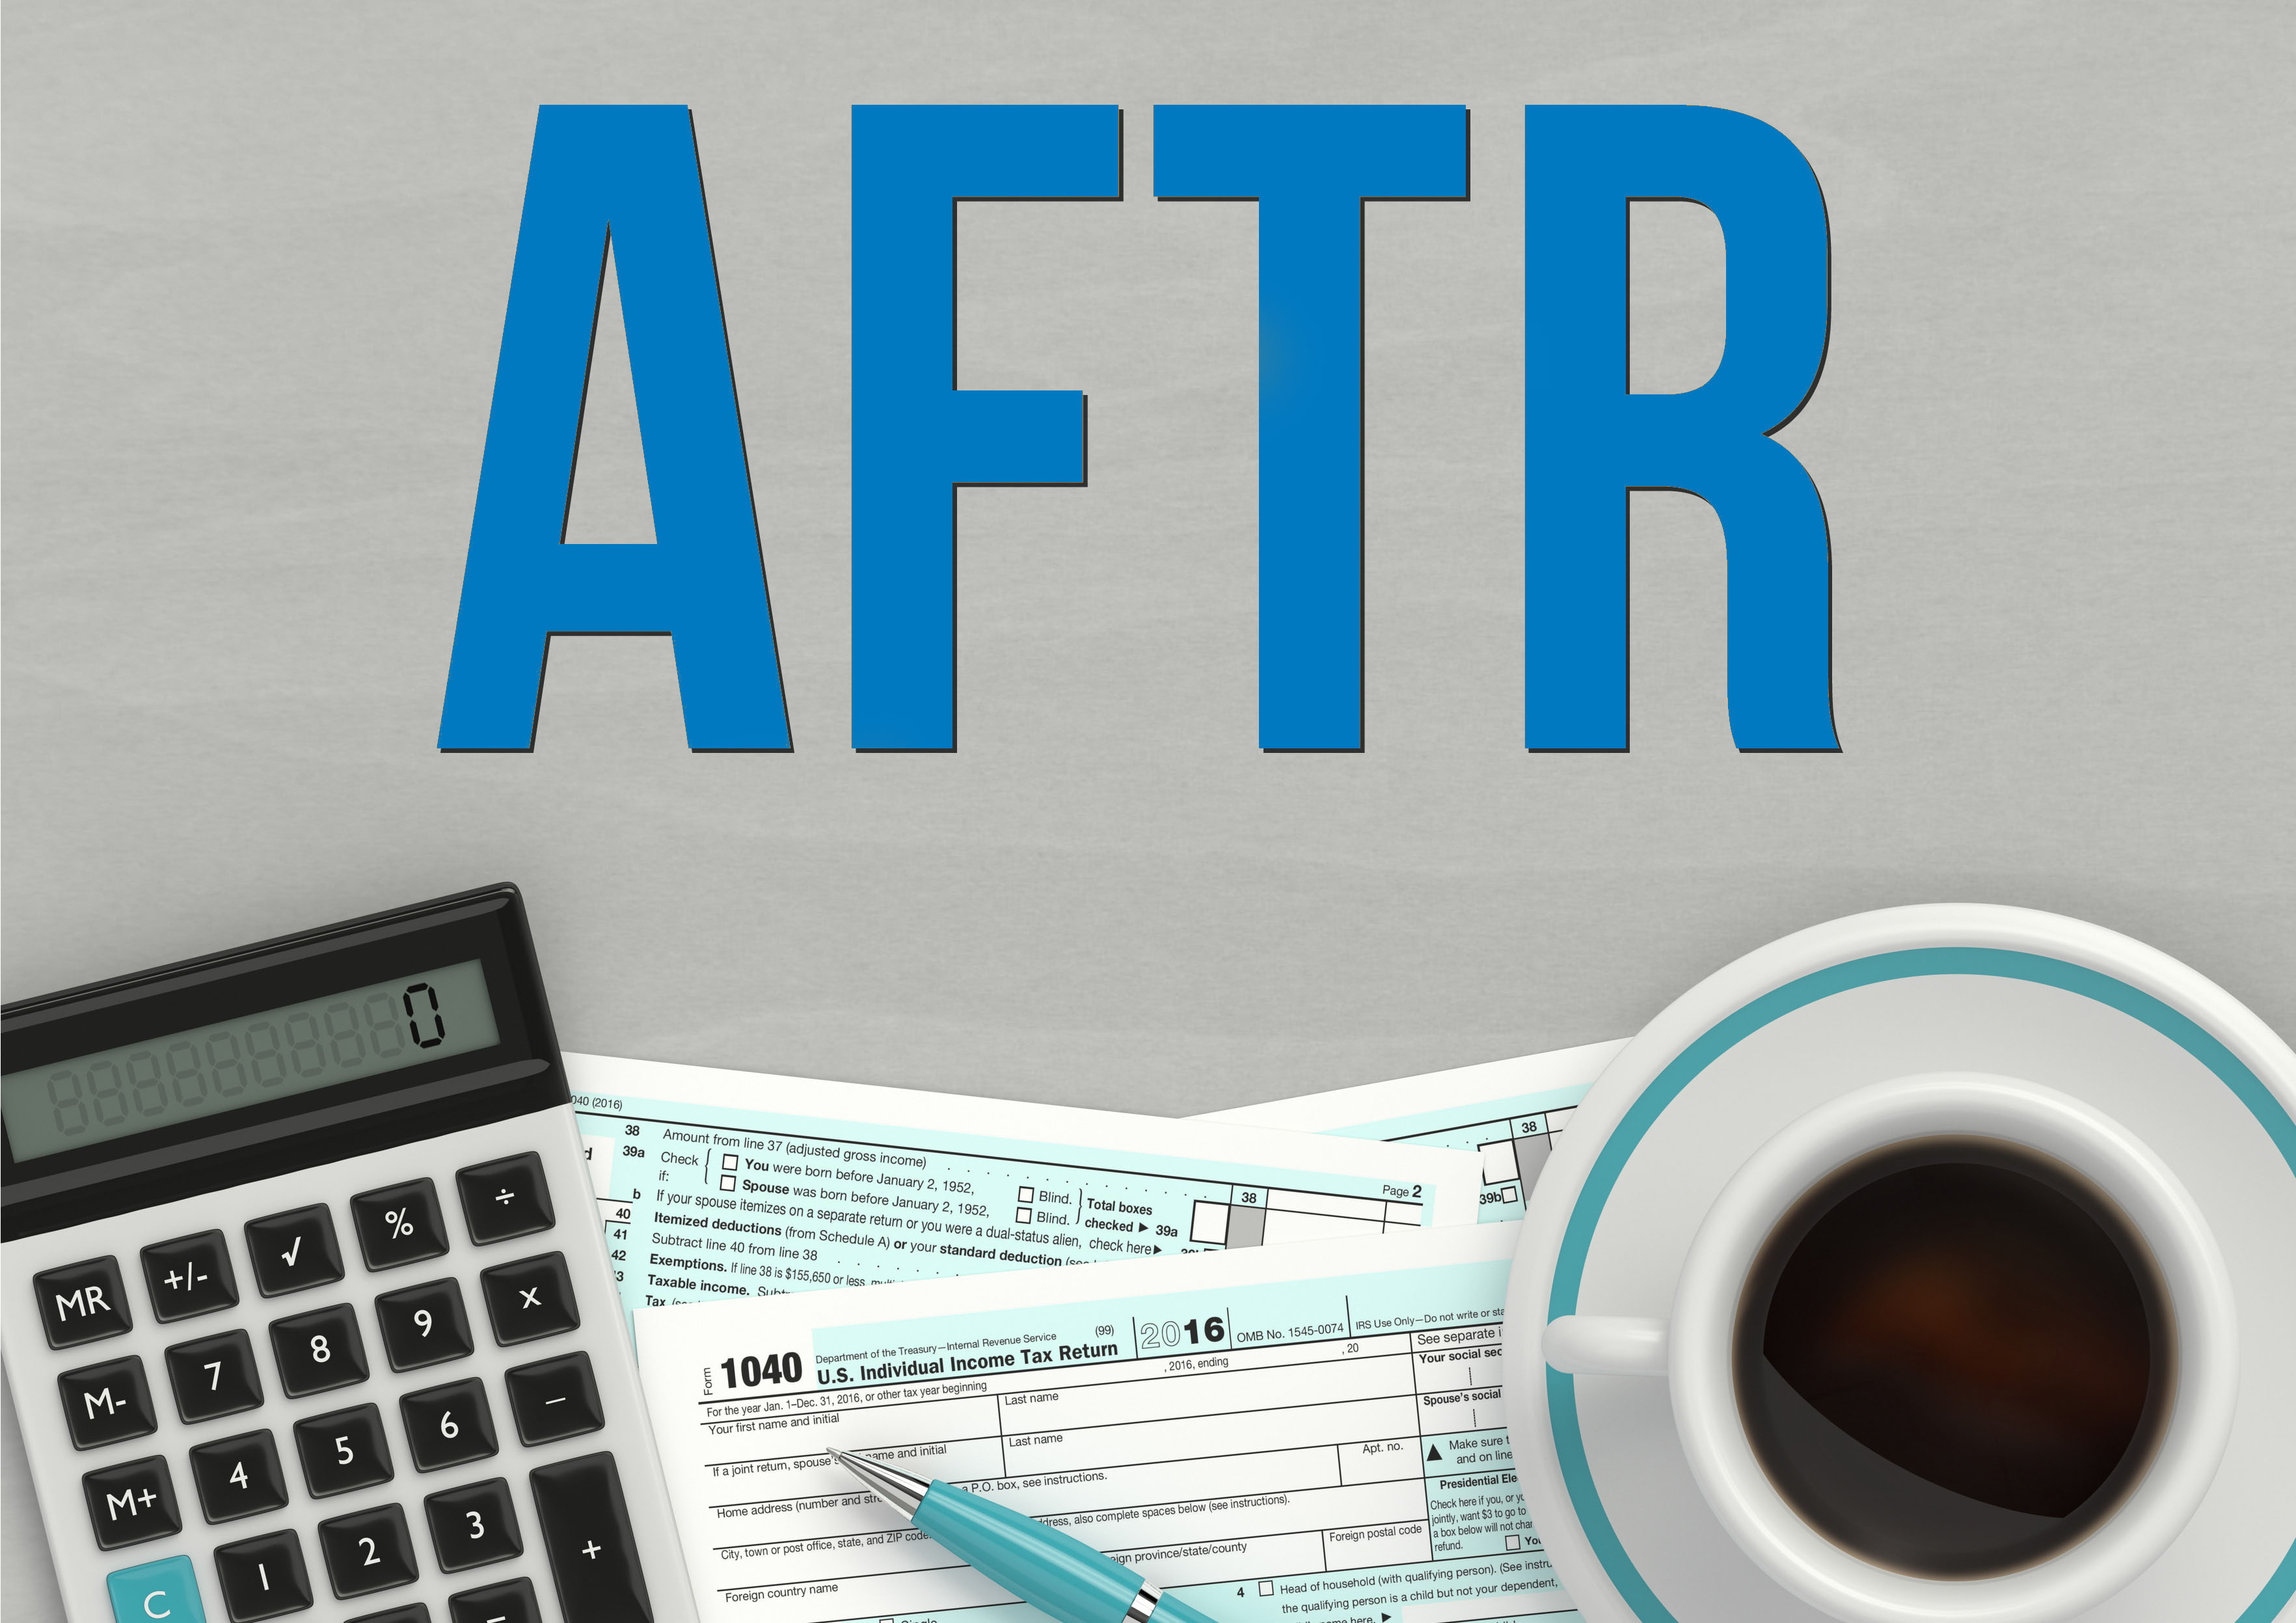 2022 Annual Federal Tax Refresher (AFTR) - 6 Credit Hours of Annual Federal Tax Refresher